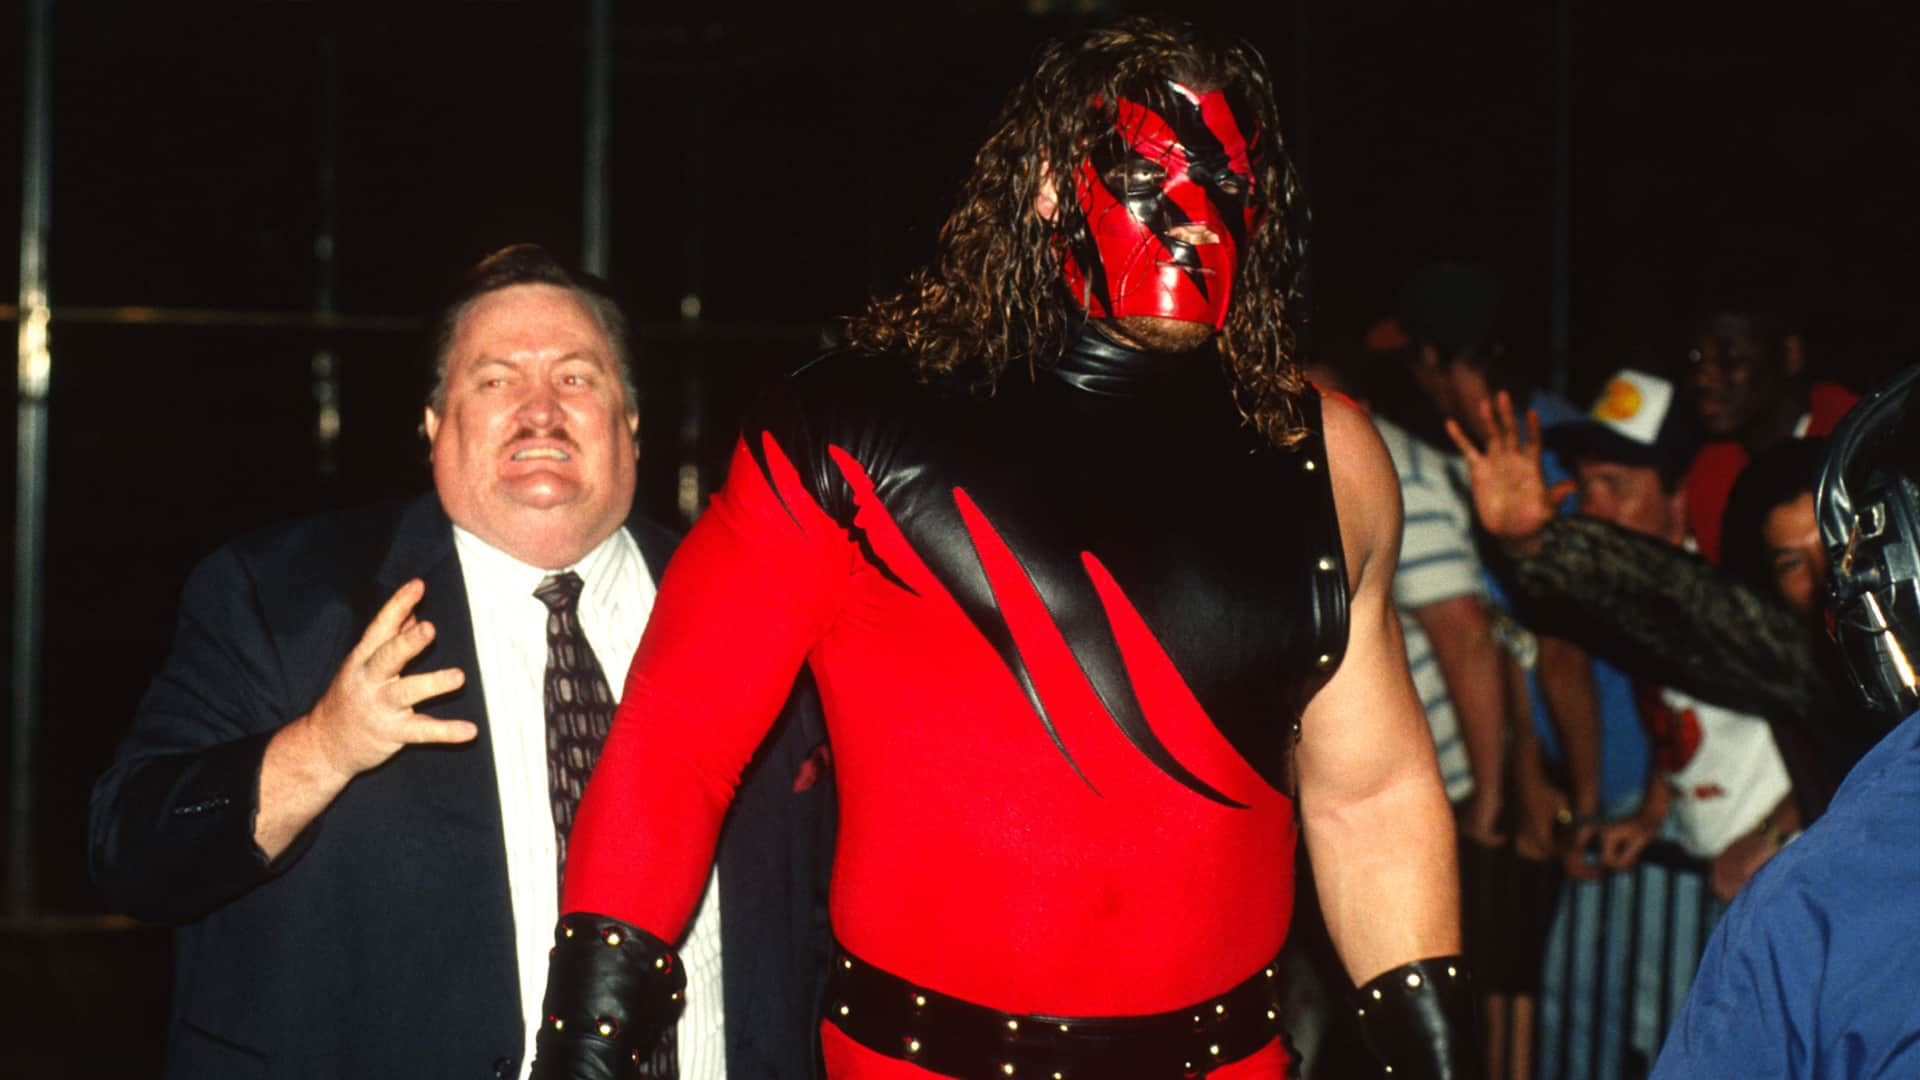 A masked Kane debuts with Paul Bearer by his side